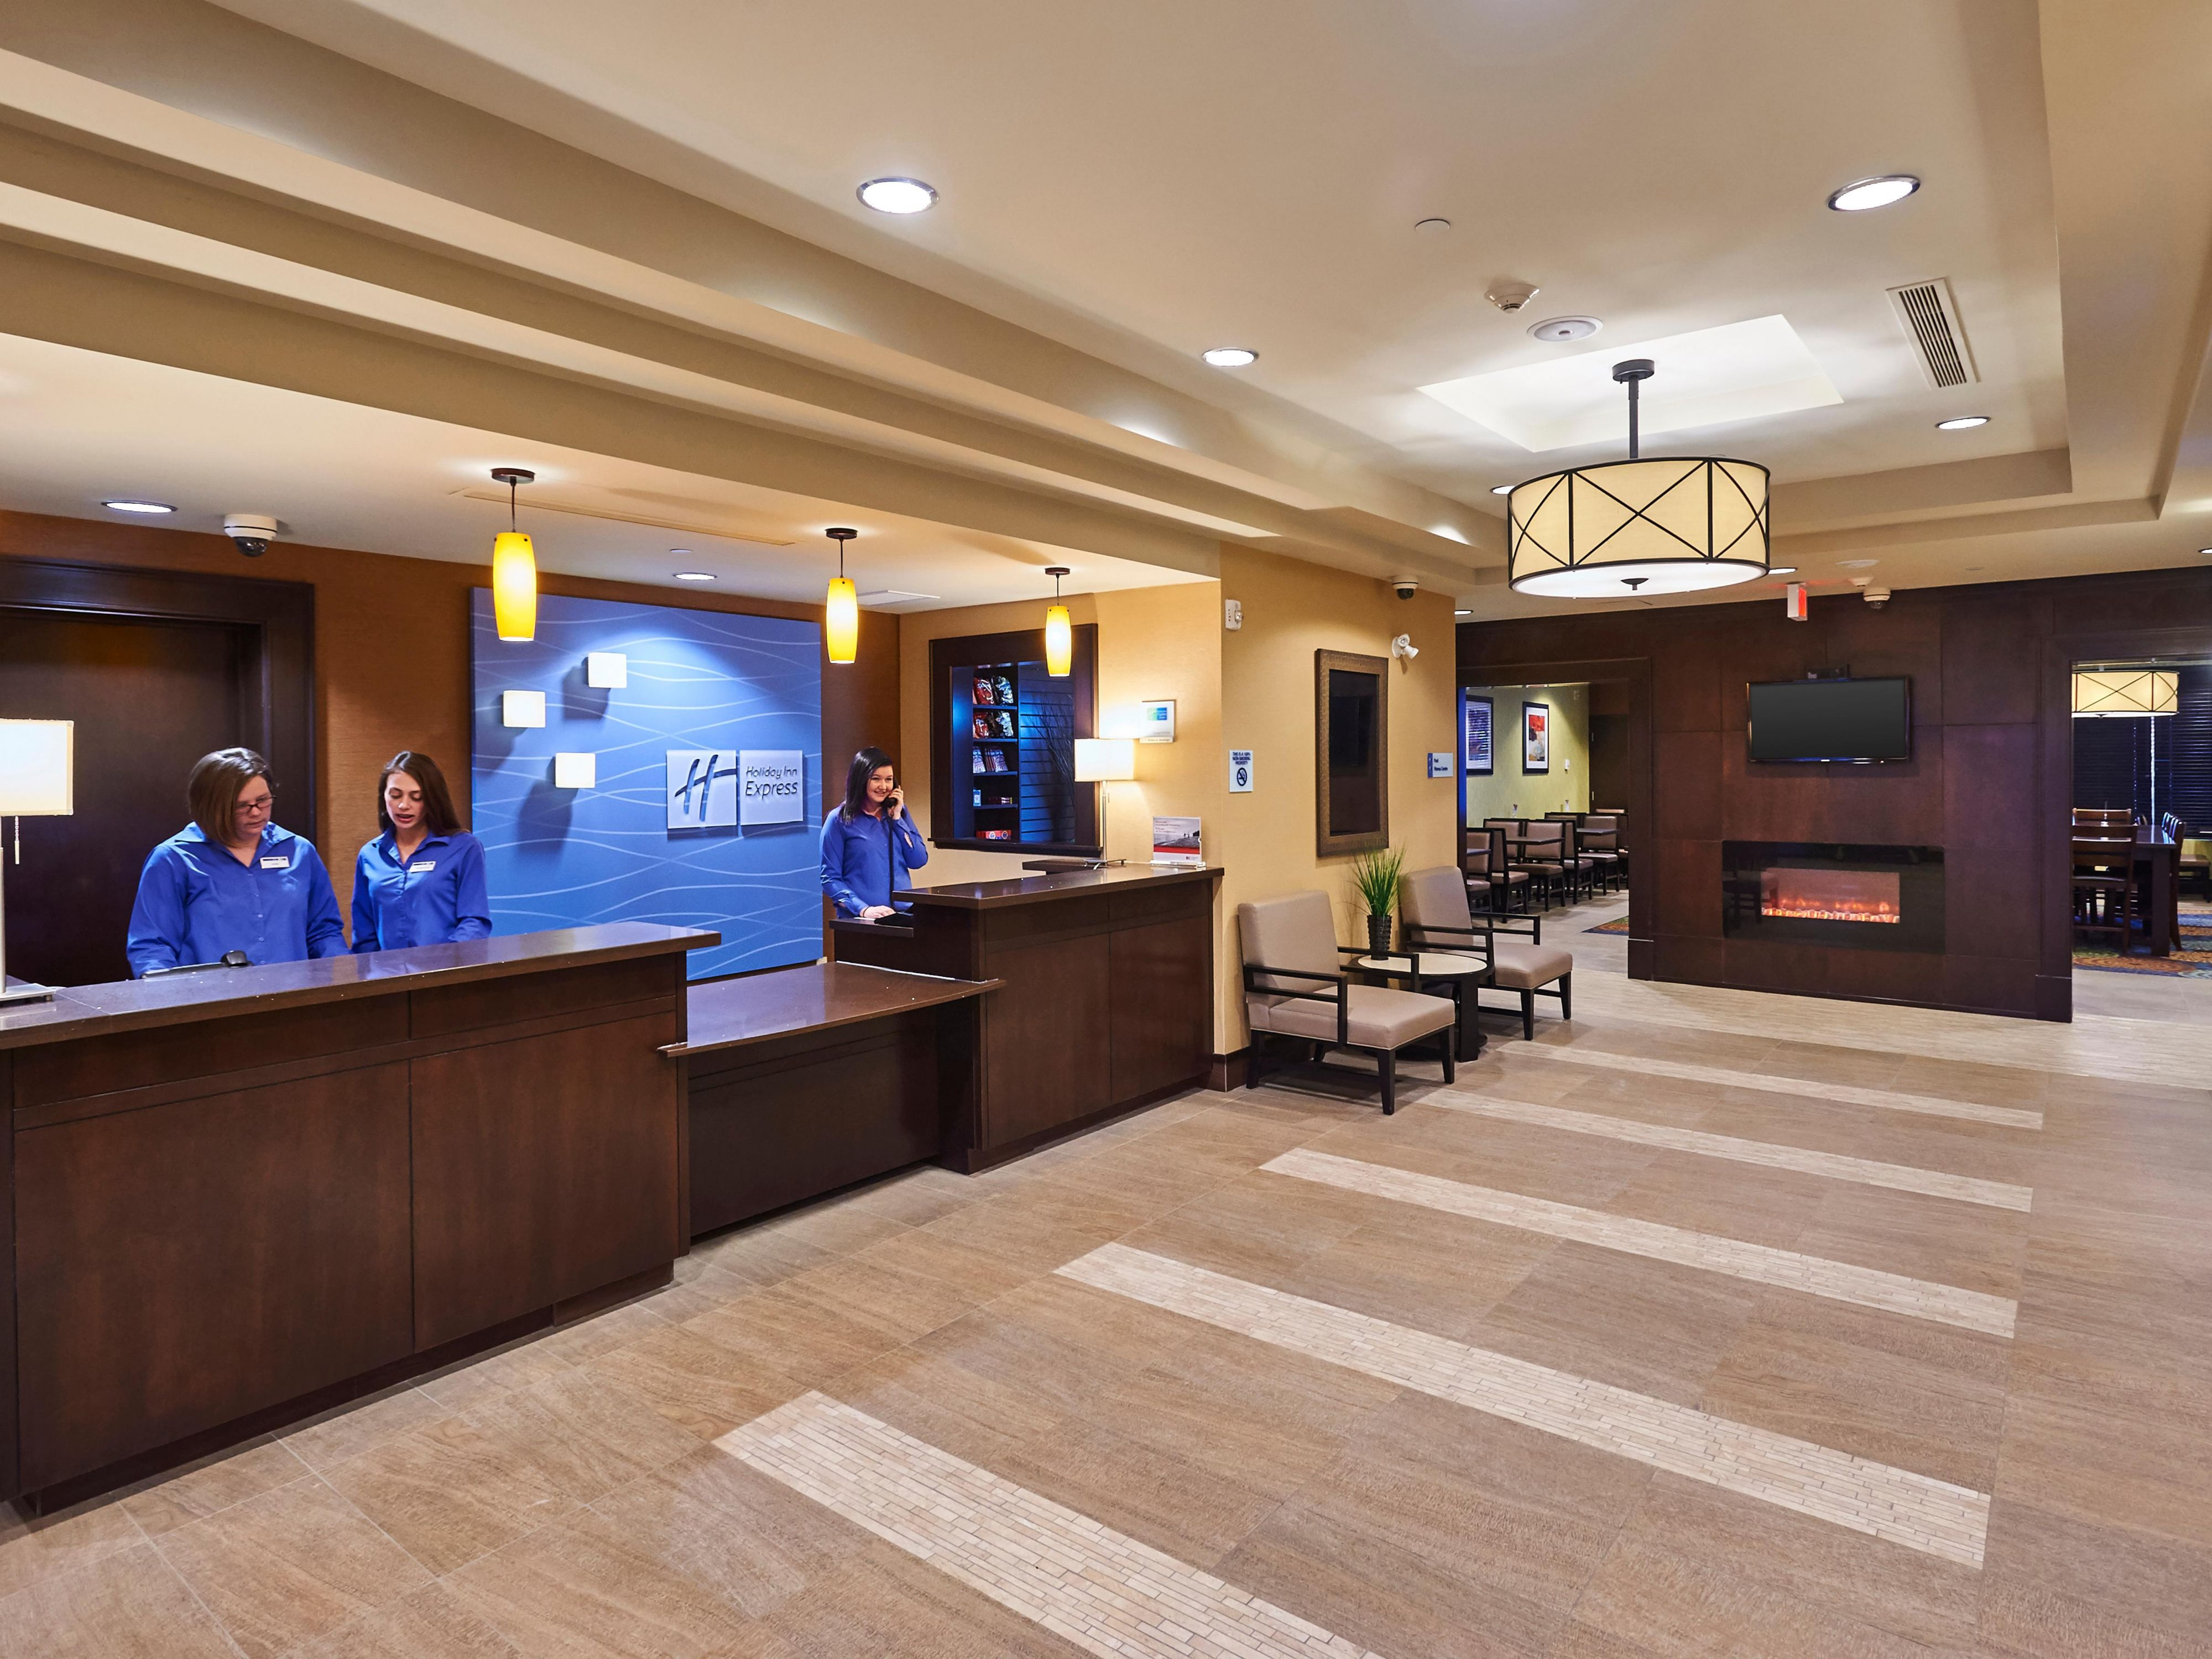 Meet friends and colleagues in our warm inviting lobby